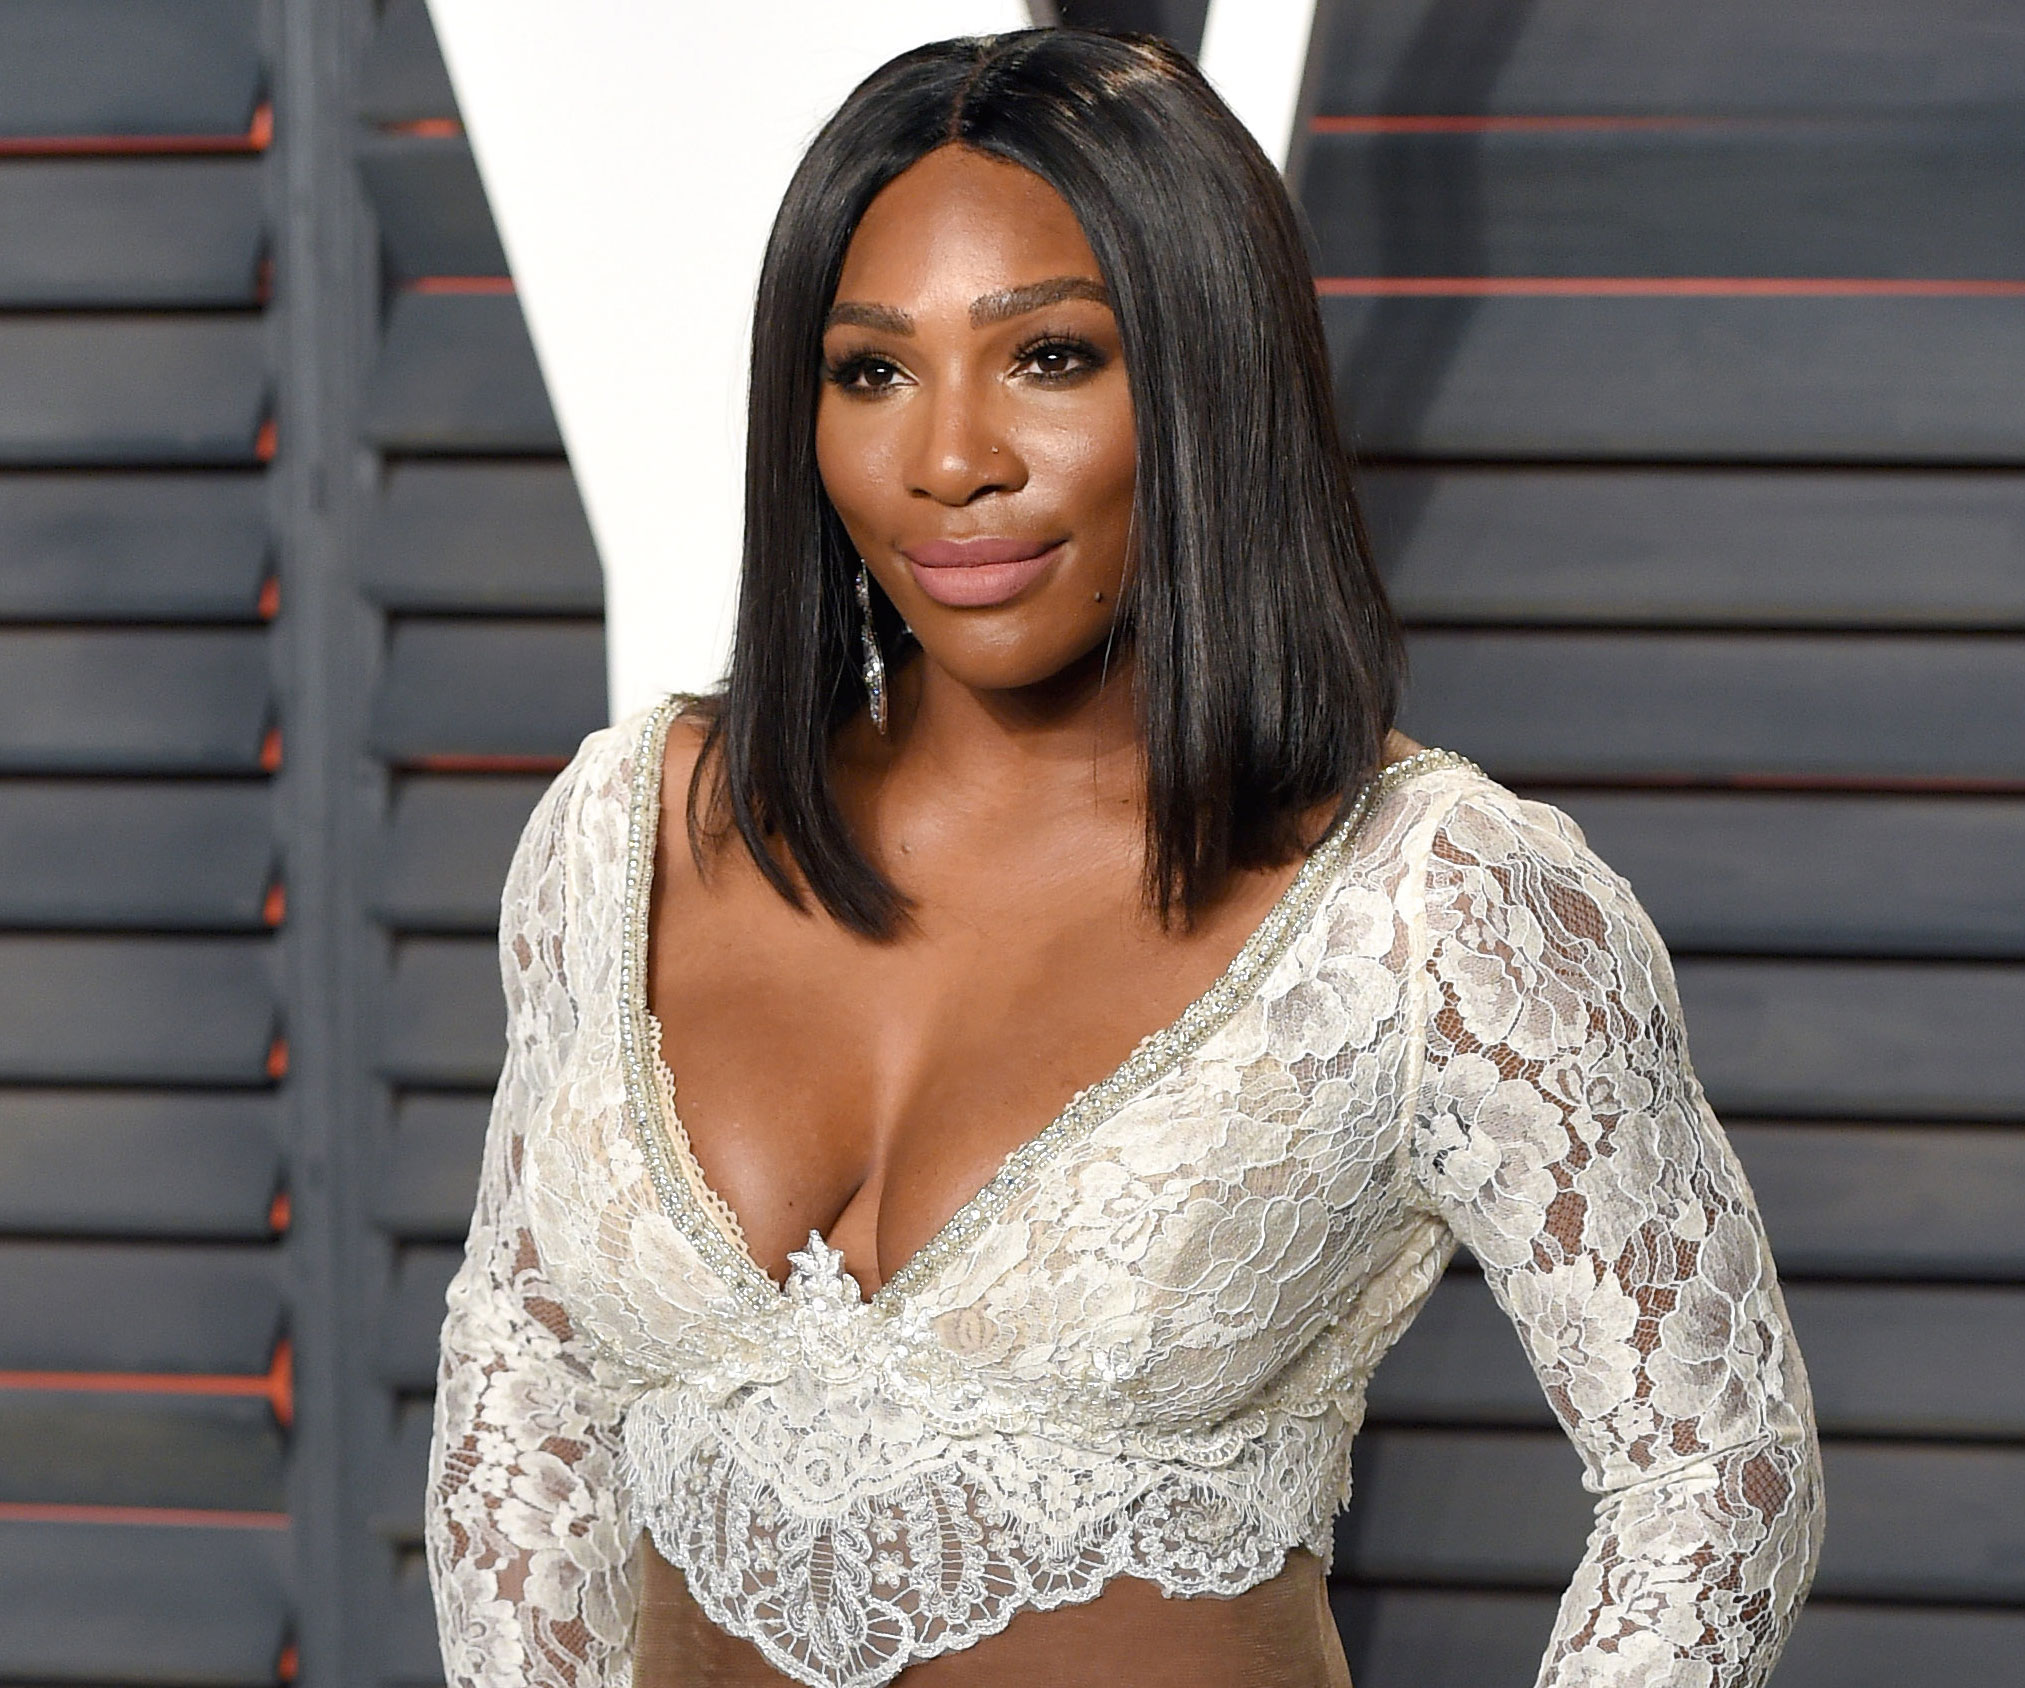 Serena Williams And Alexis Ohanian's Wedding Was The Event Of The Year